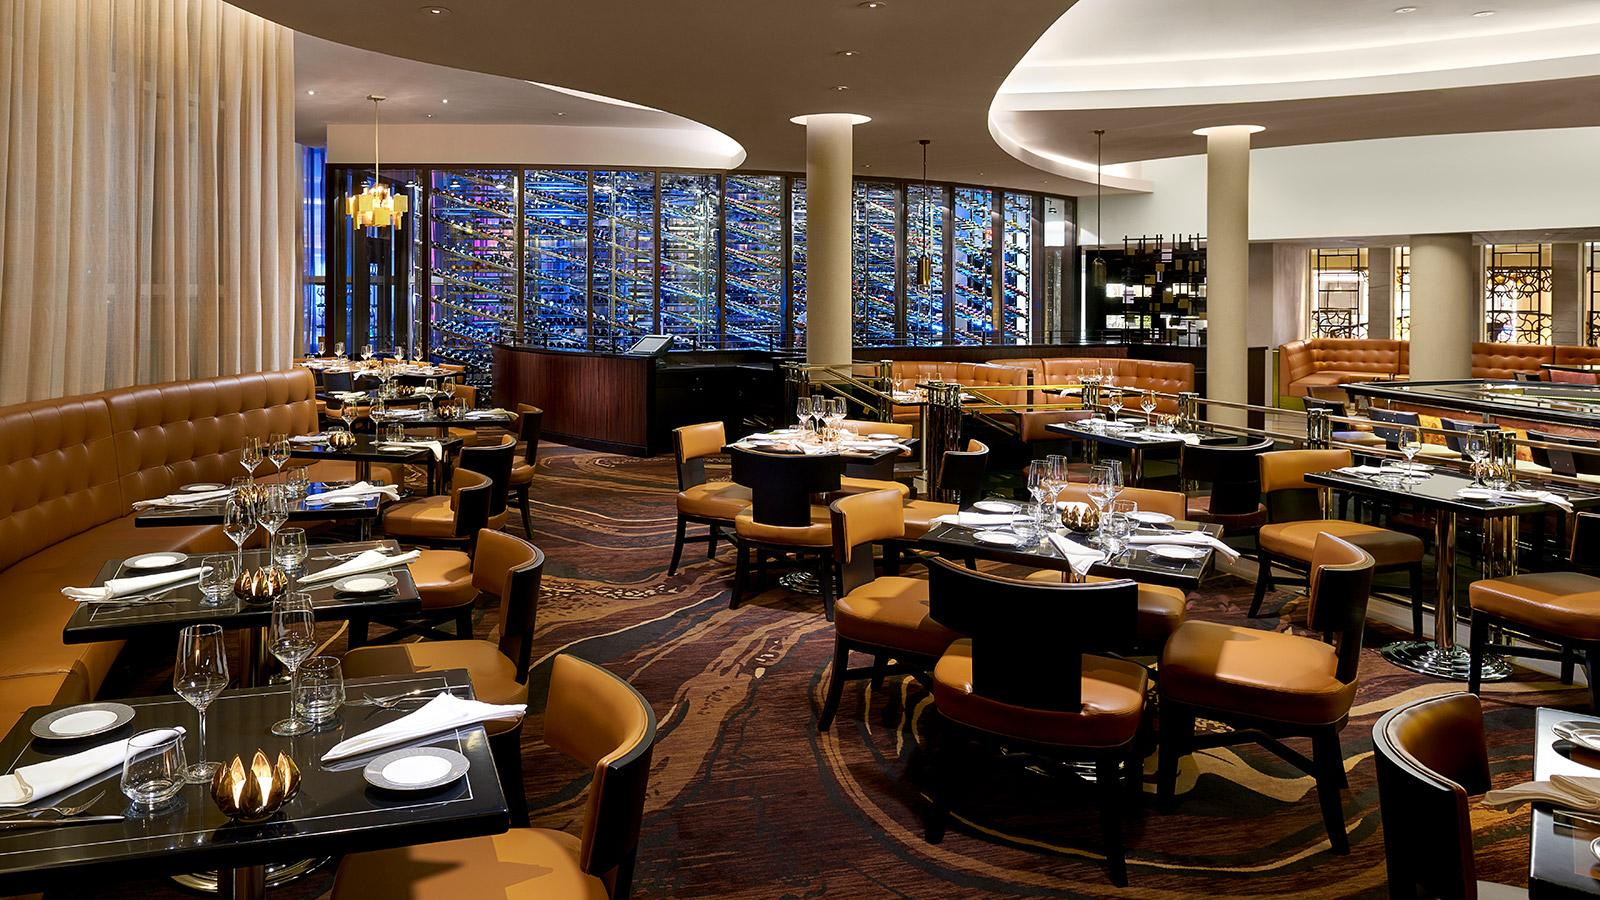 StripSteak is the Fontainebleau Hotel's premier steakhouse, owned by renowned chef Michael Mina.